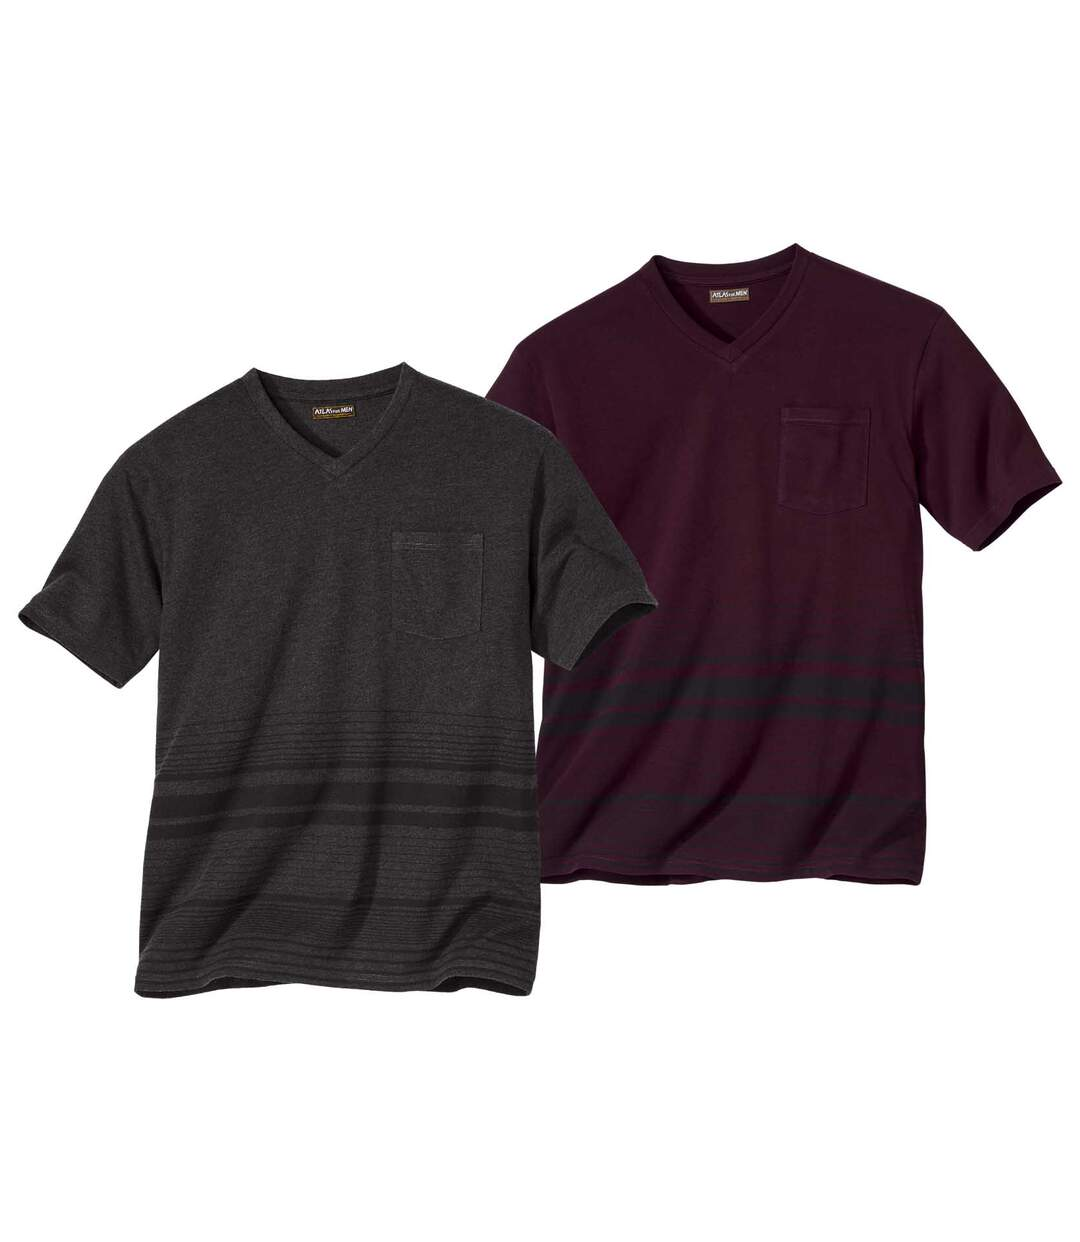 Pack of 2 Men's Striped T-Shirts - Burgundy Grey